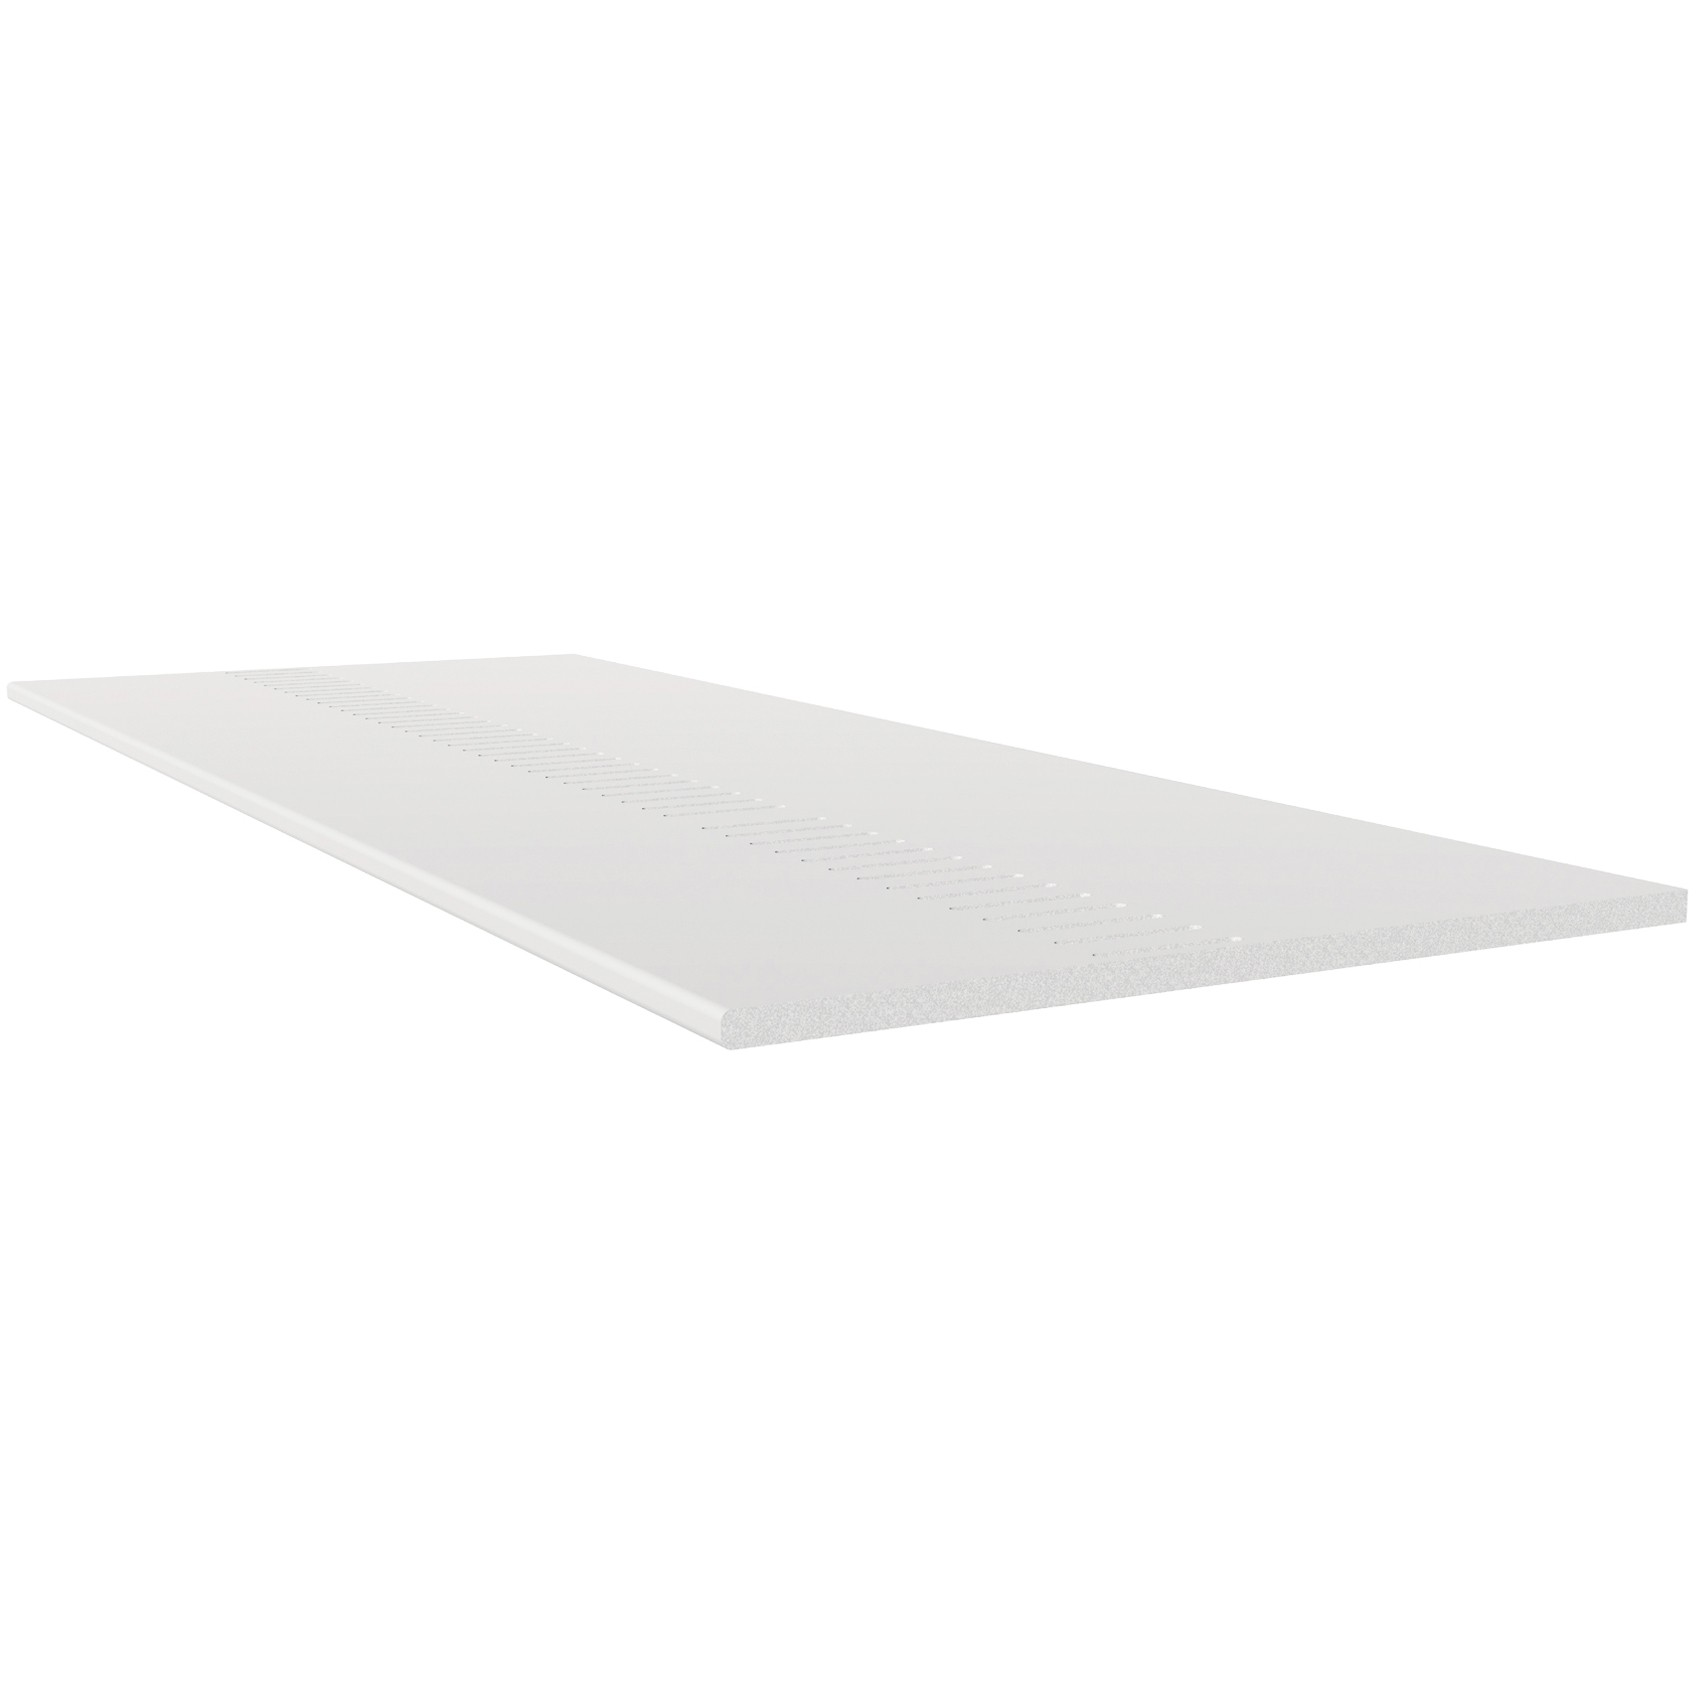 Freefoam Pre Vented 10mm Solid Soffit Board - White, 150mm, 5 metre